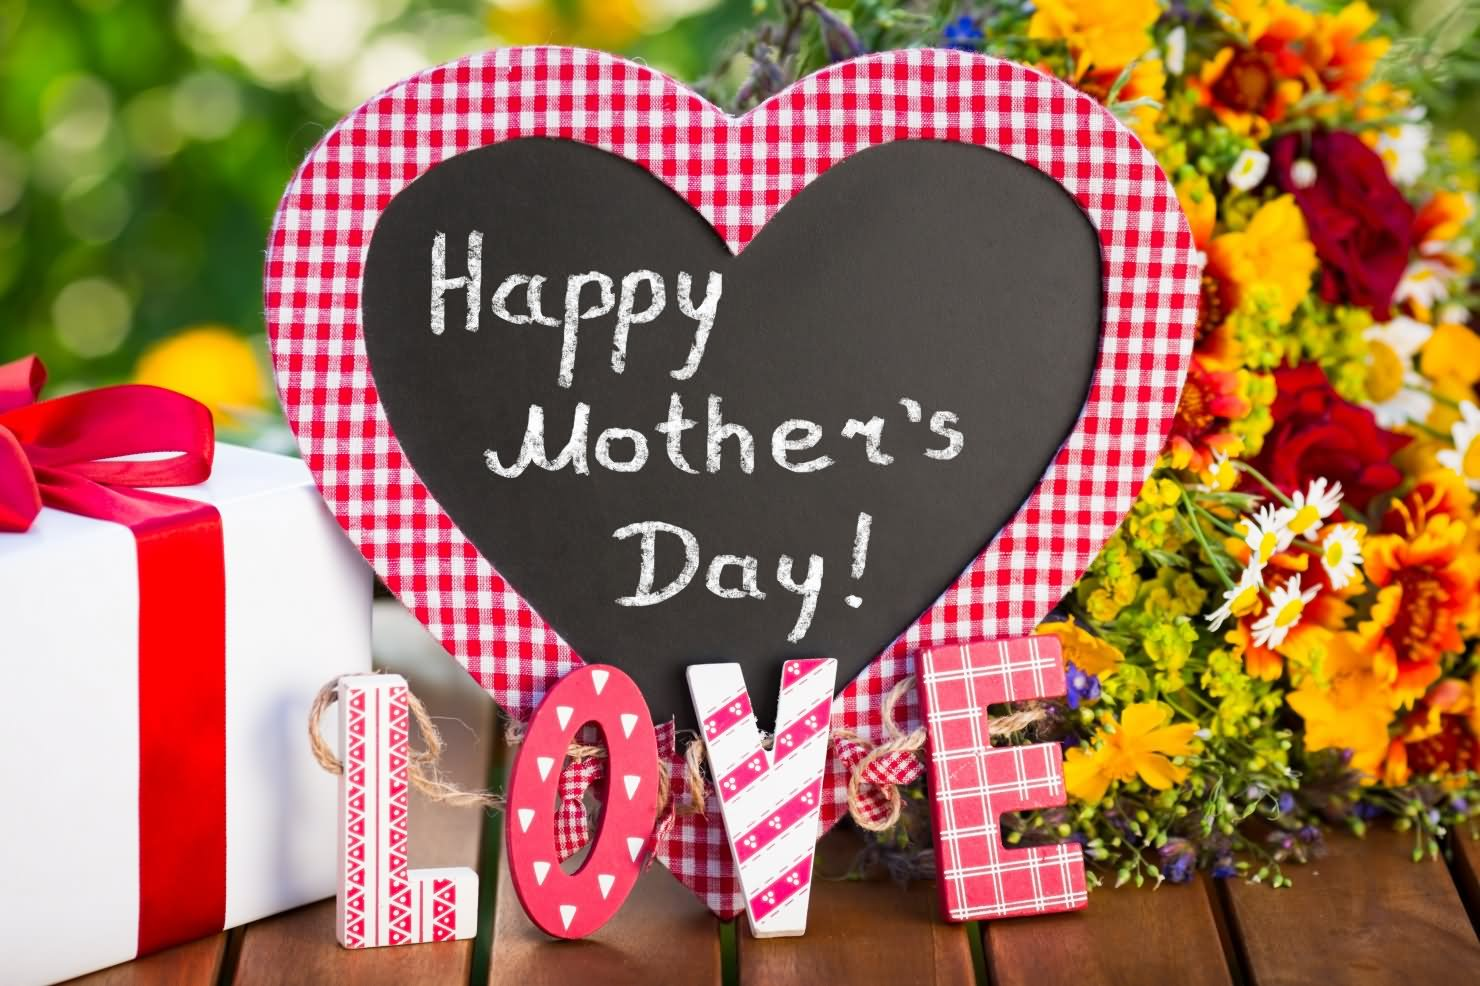 40 most adorable mother's day wish pictures and images